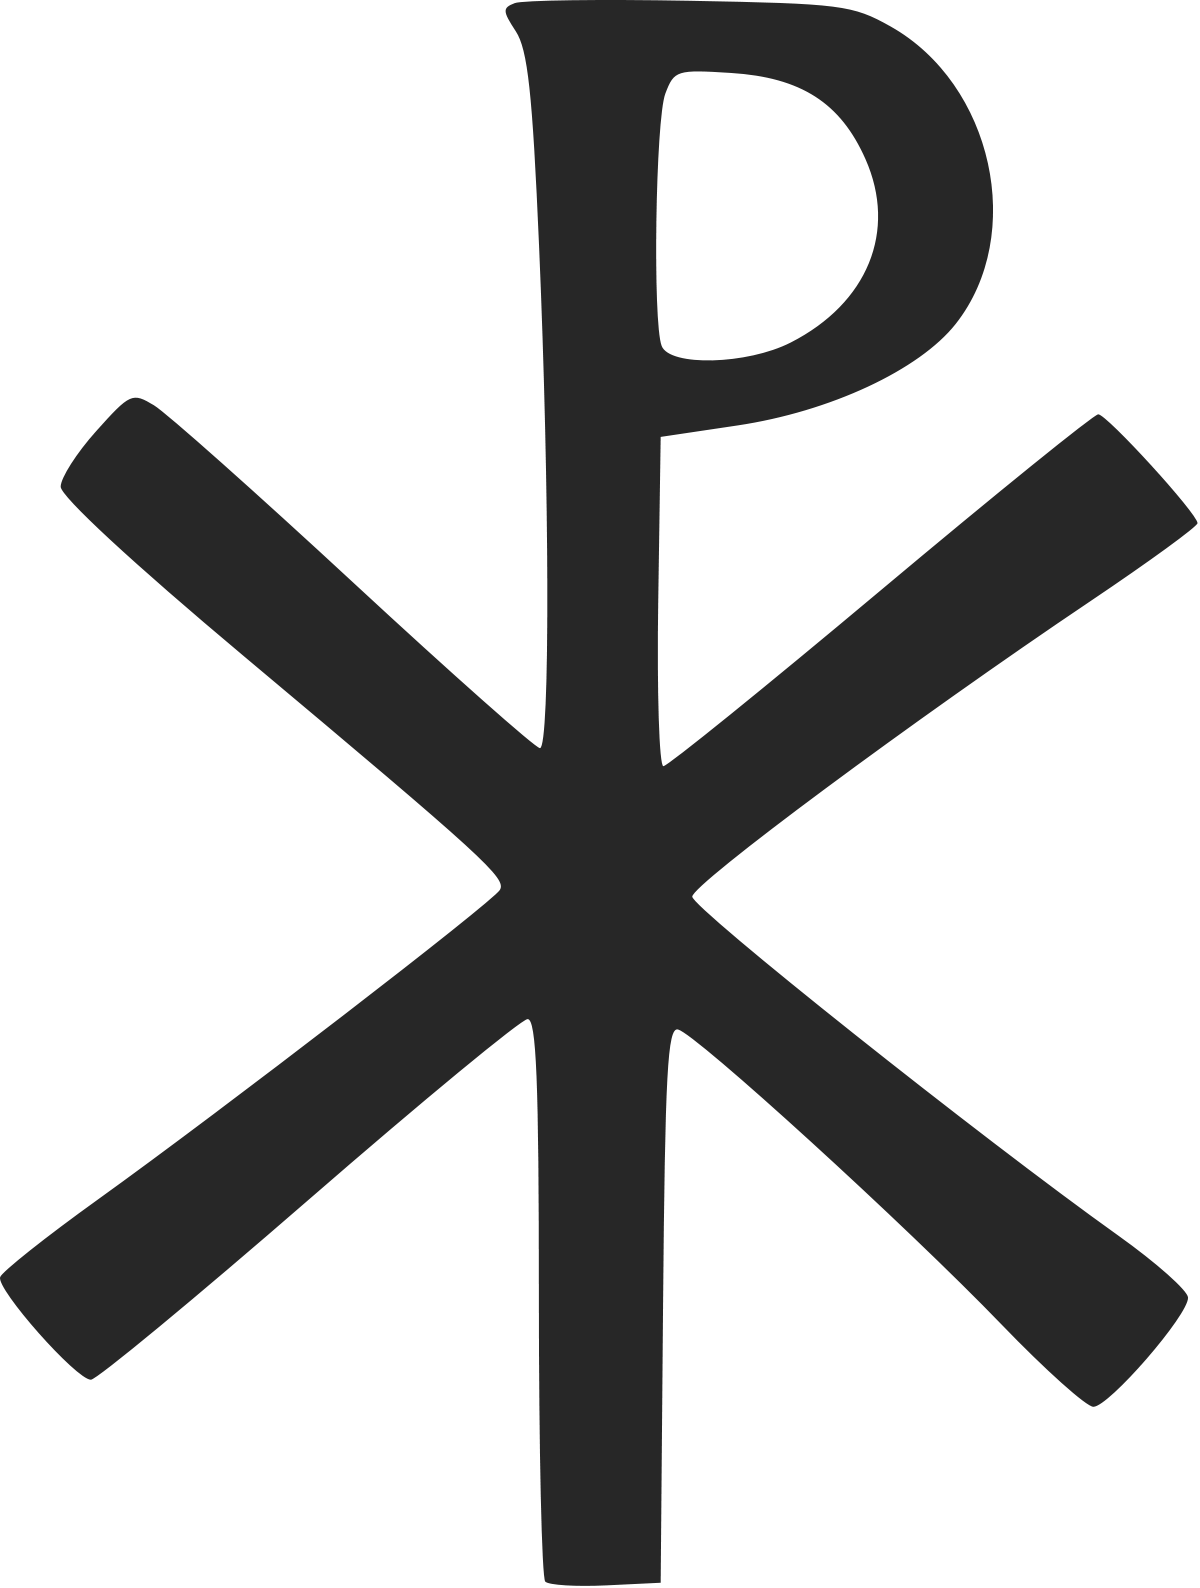 Orthodox cross clipart royalty free stock Link: Chi Rho symbol.